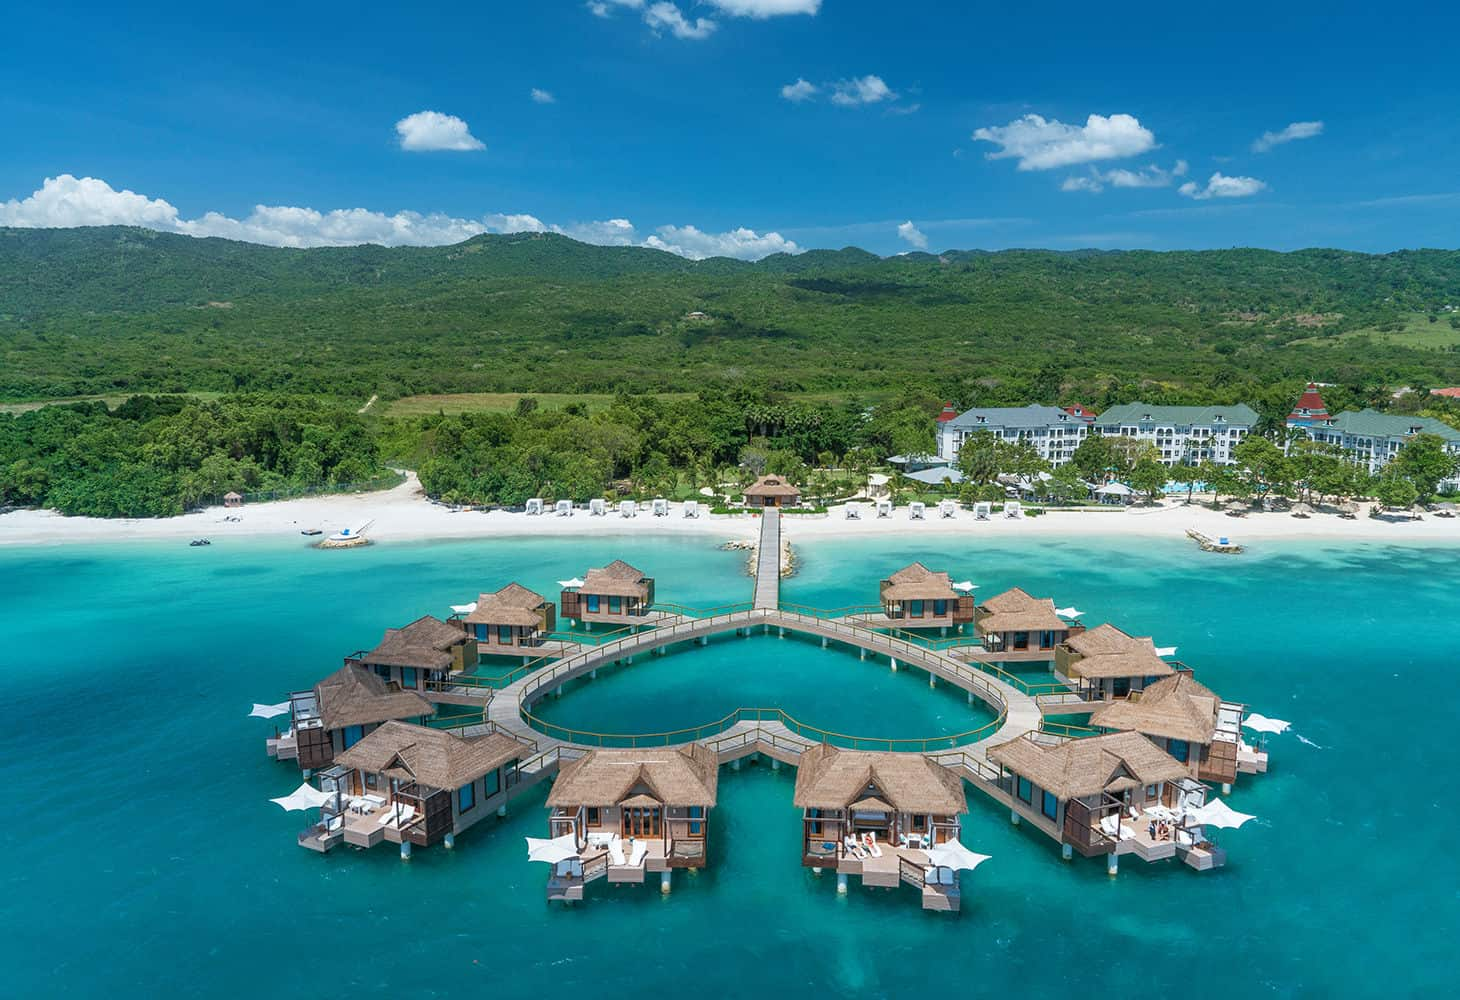 Image of overwater bungalows in Jamaica